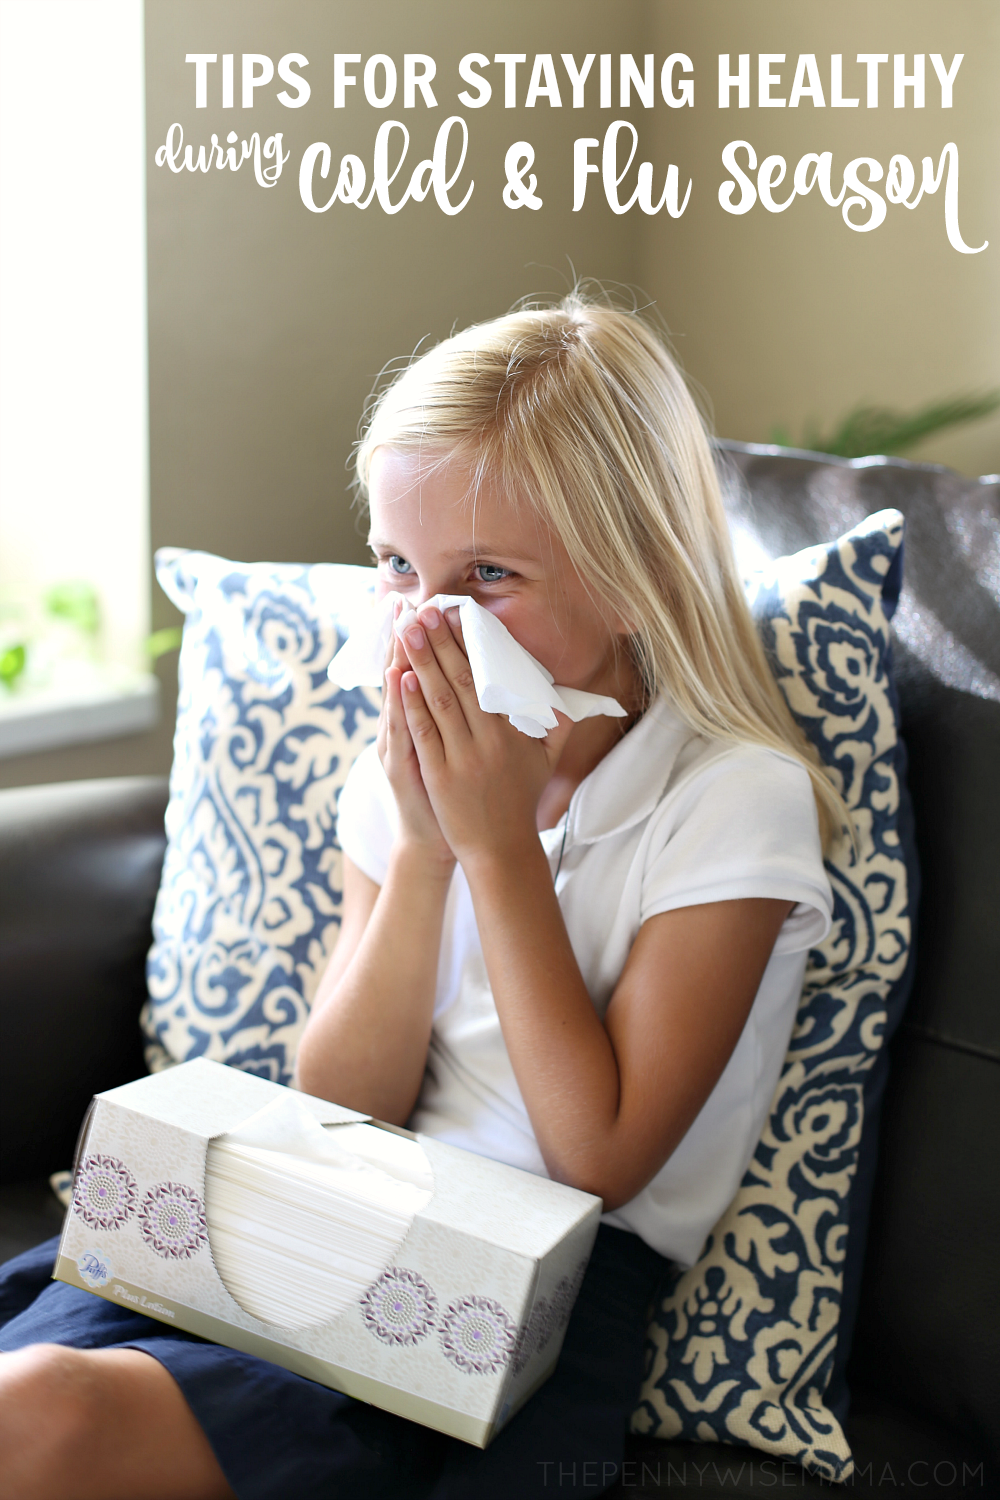 Tips for Staying Healthy During Cold & Flu Season